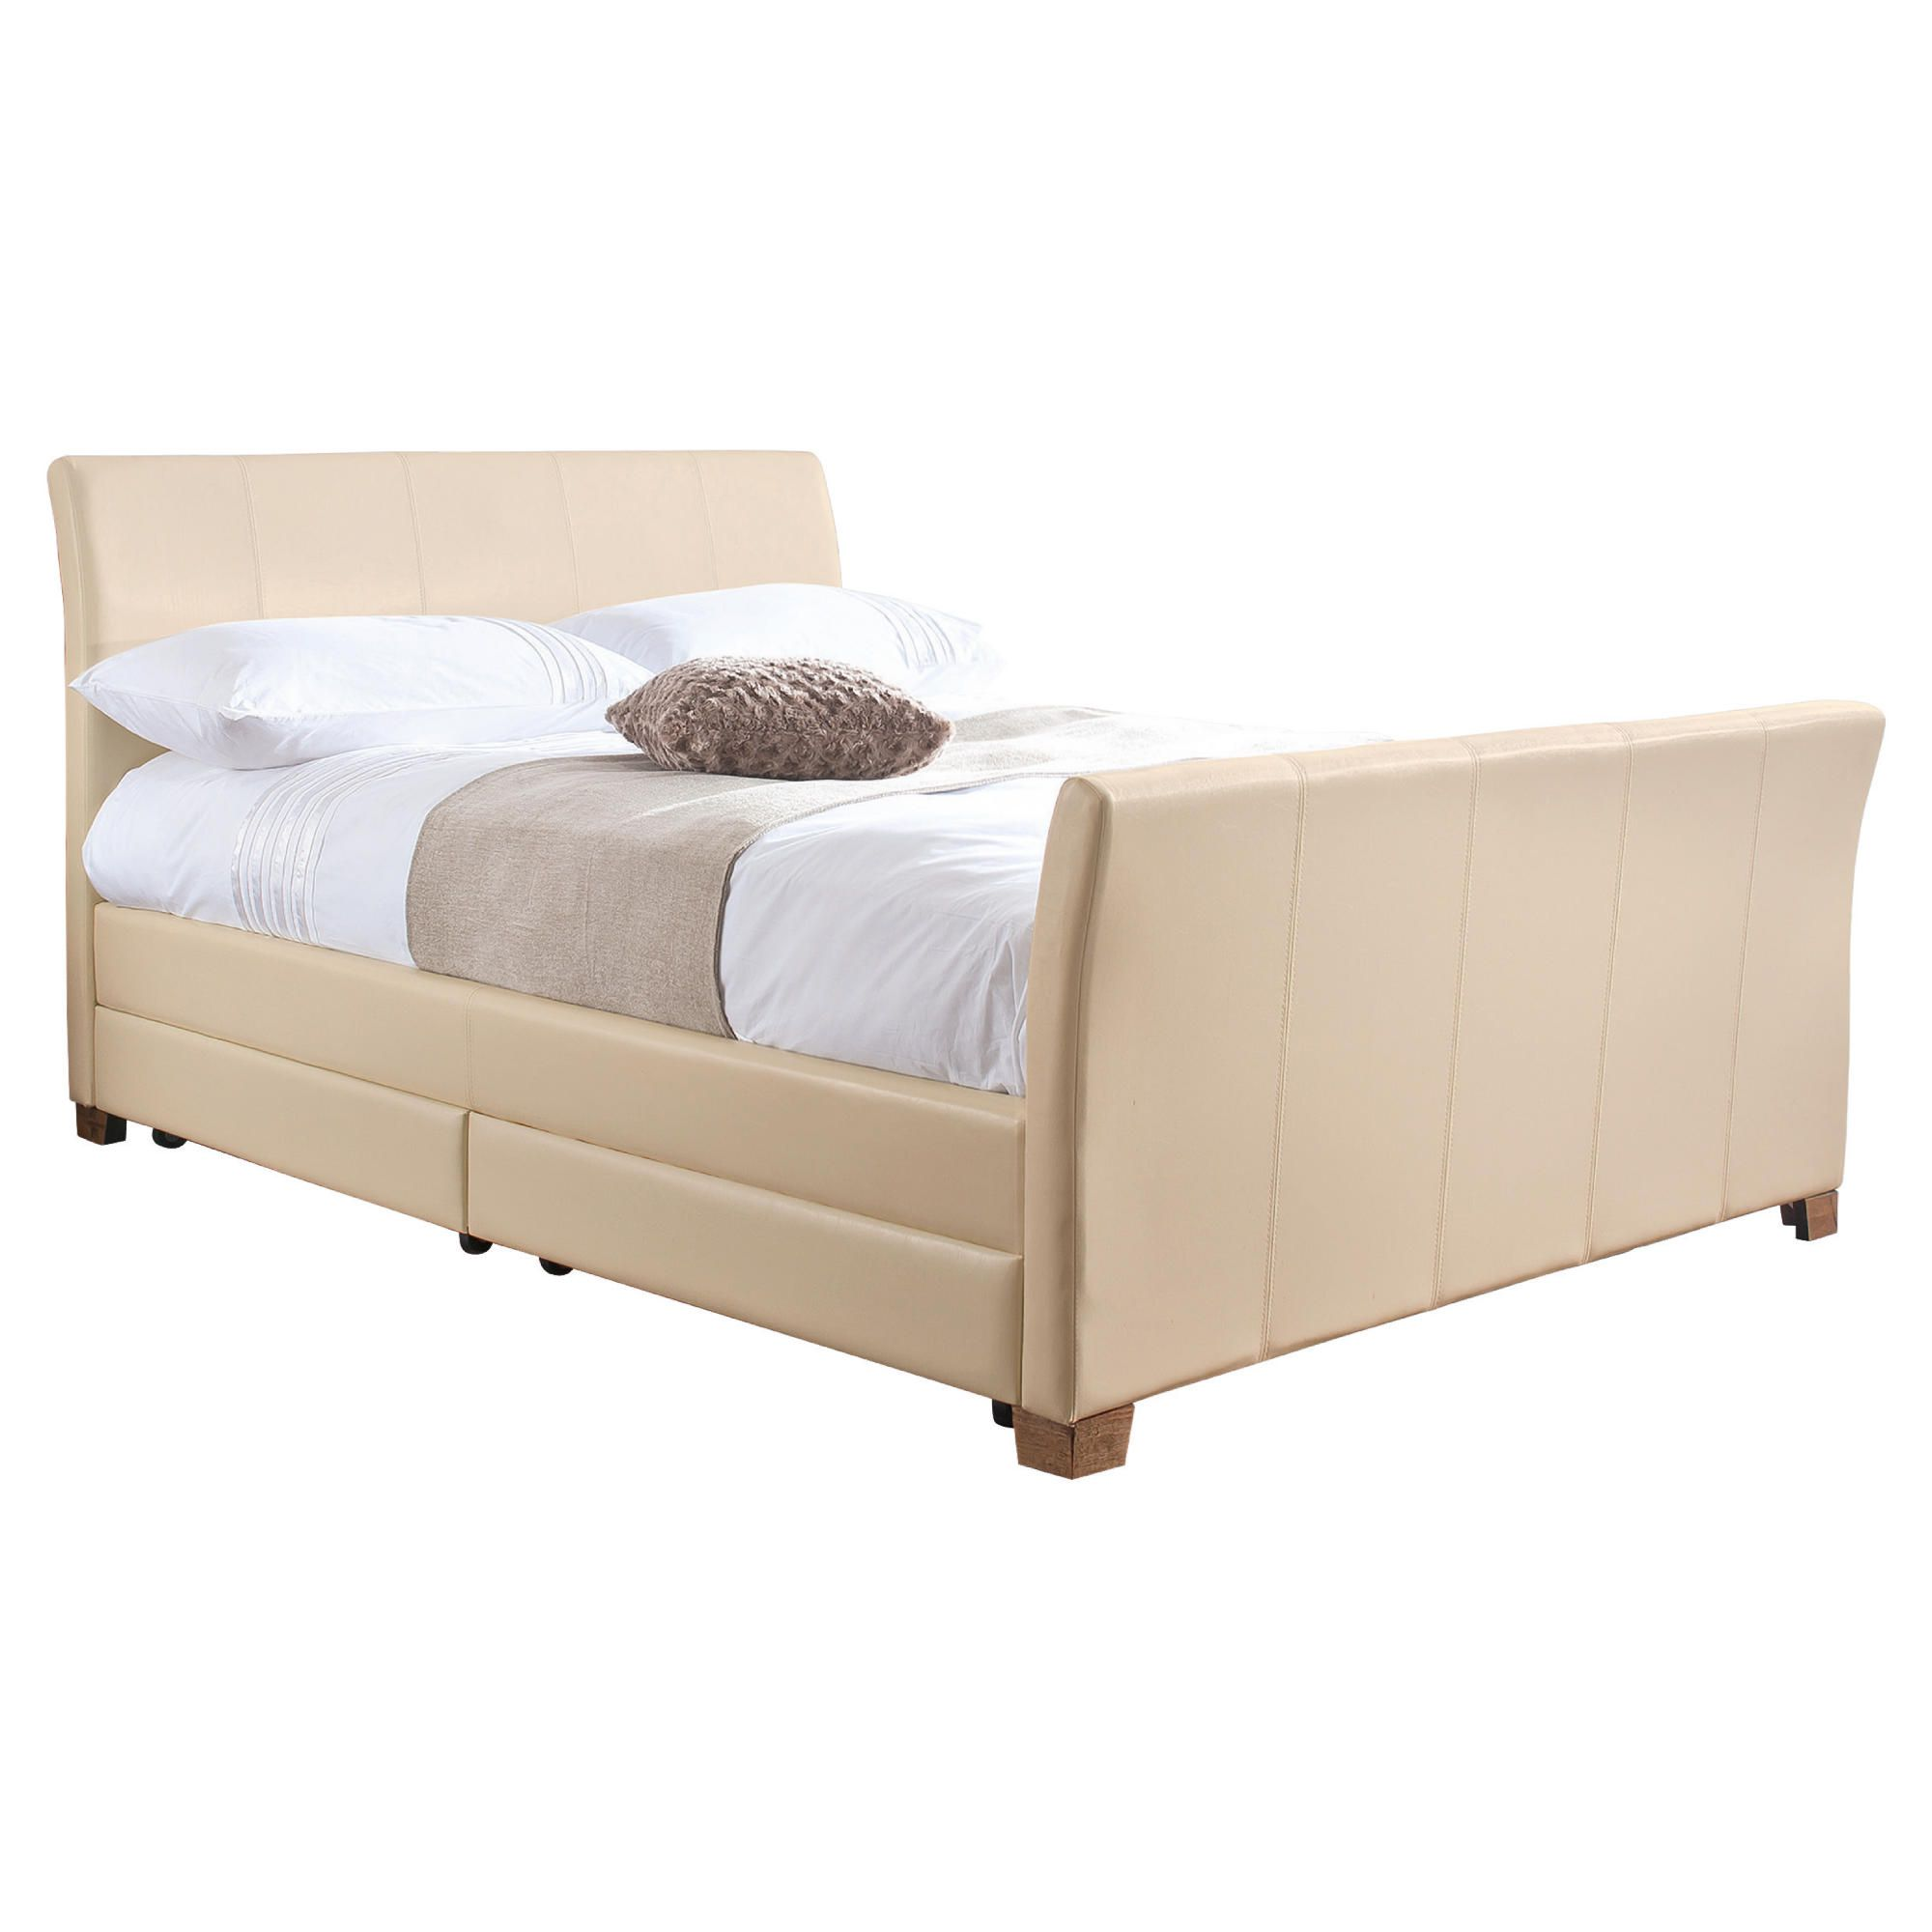 Rayne King Faux Leather Bed Frame with 4 Drawers, Cream at Tesco Direct